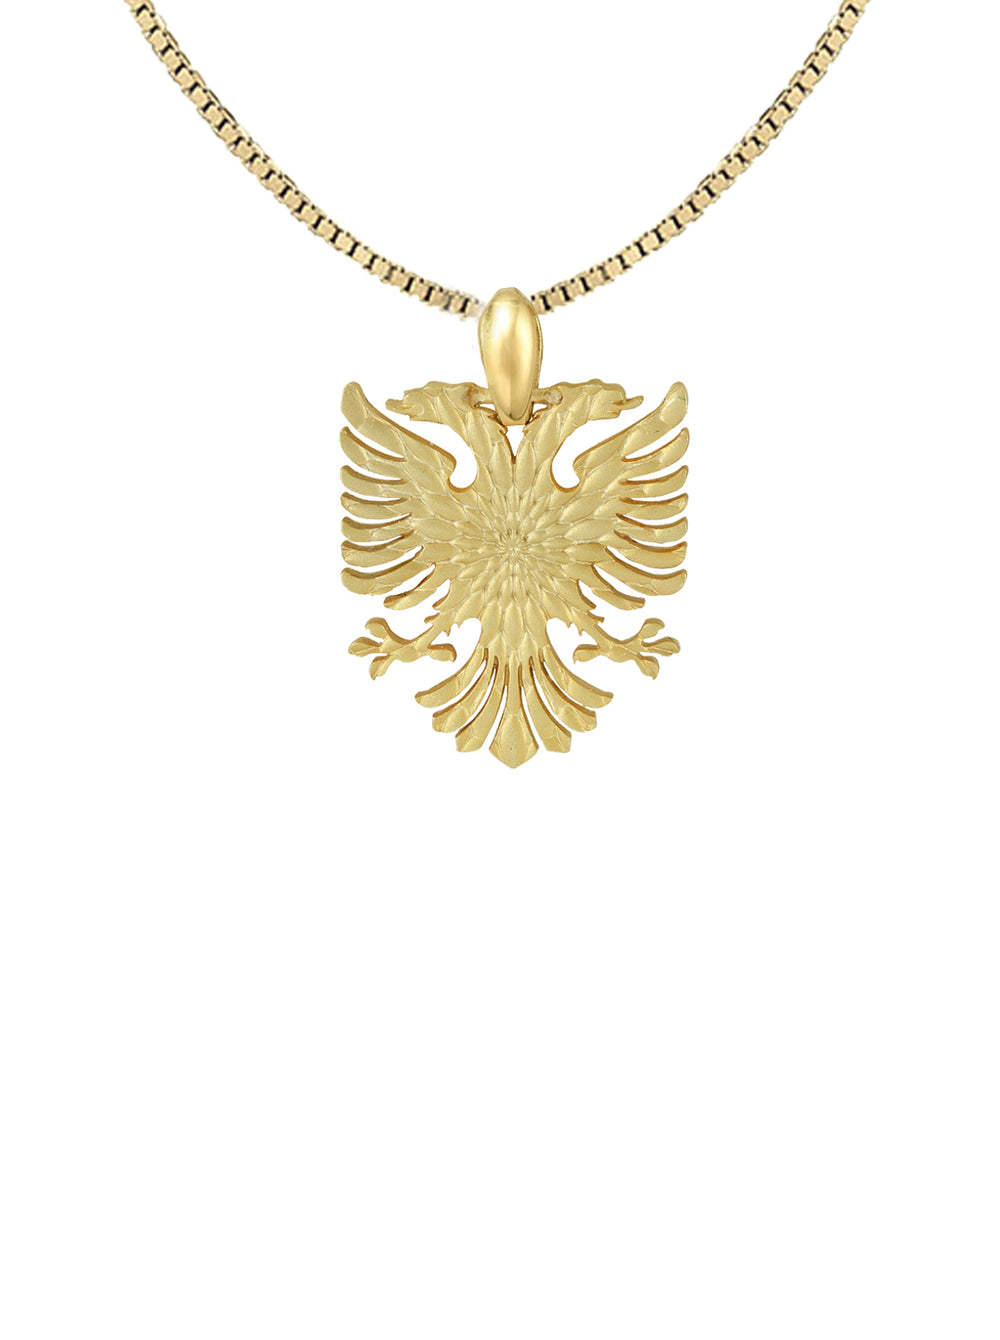 ALBANIAN EAGLE (CHAPTER II BY GREG YÜNA X THE M JEWELERS)